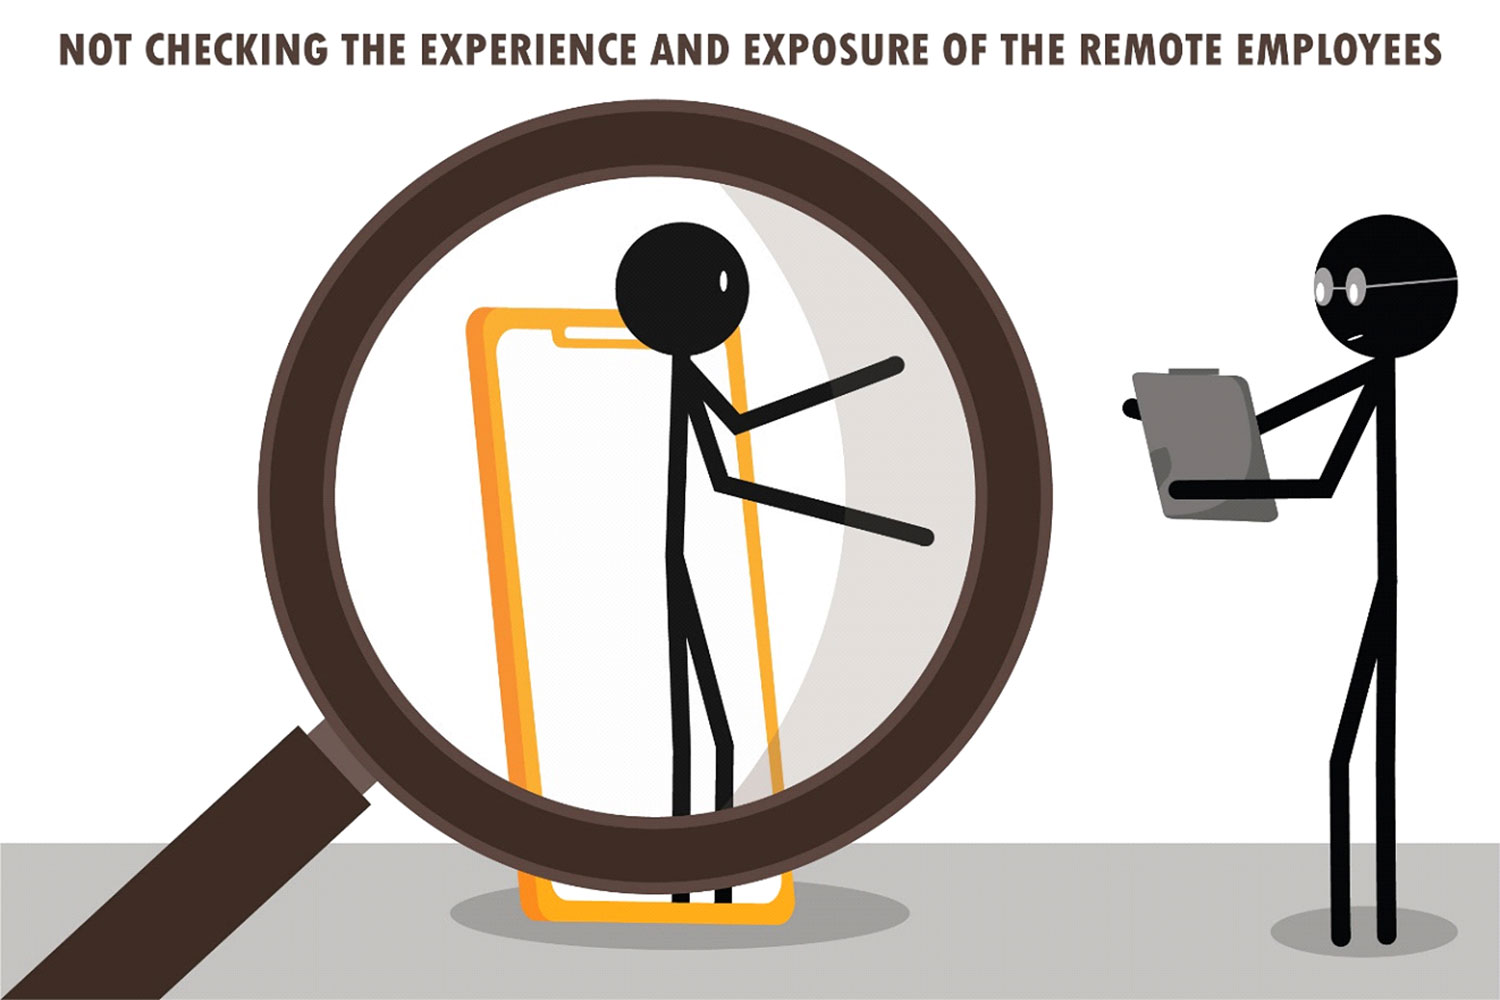 NOT-CHECKING-THE-EXPERIENCE-AND-EXPOSURE-OF-THE-REMOTE-EMPLOYEES